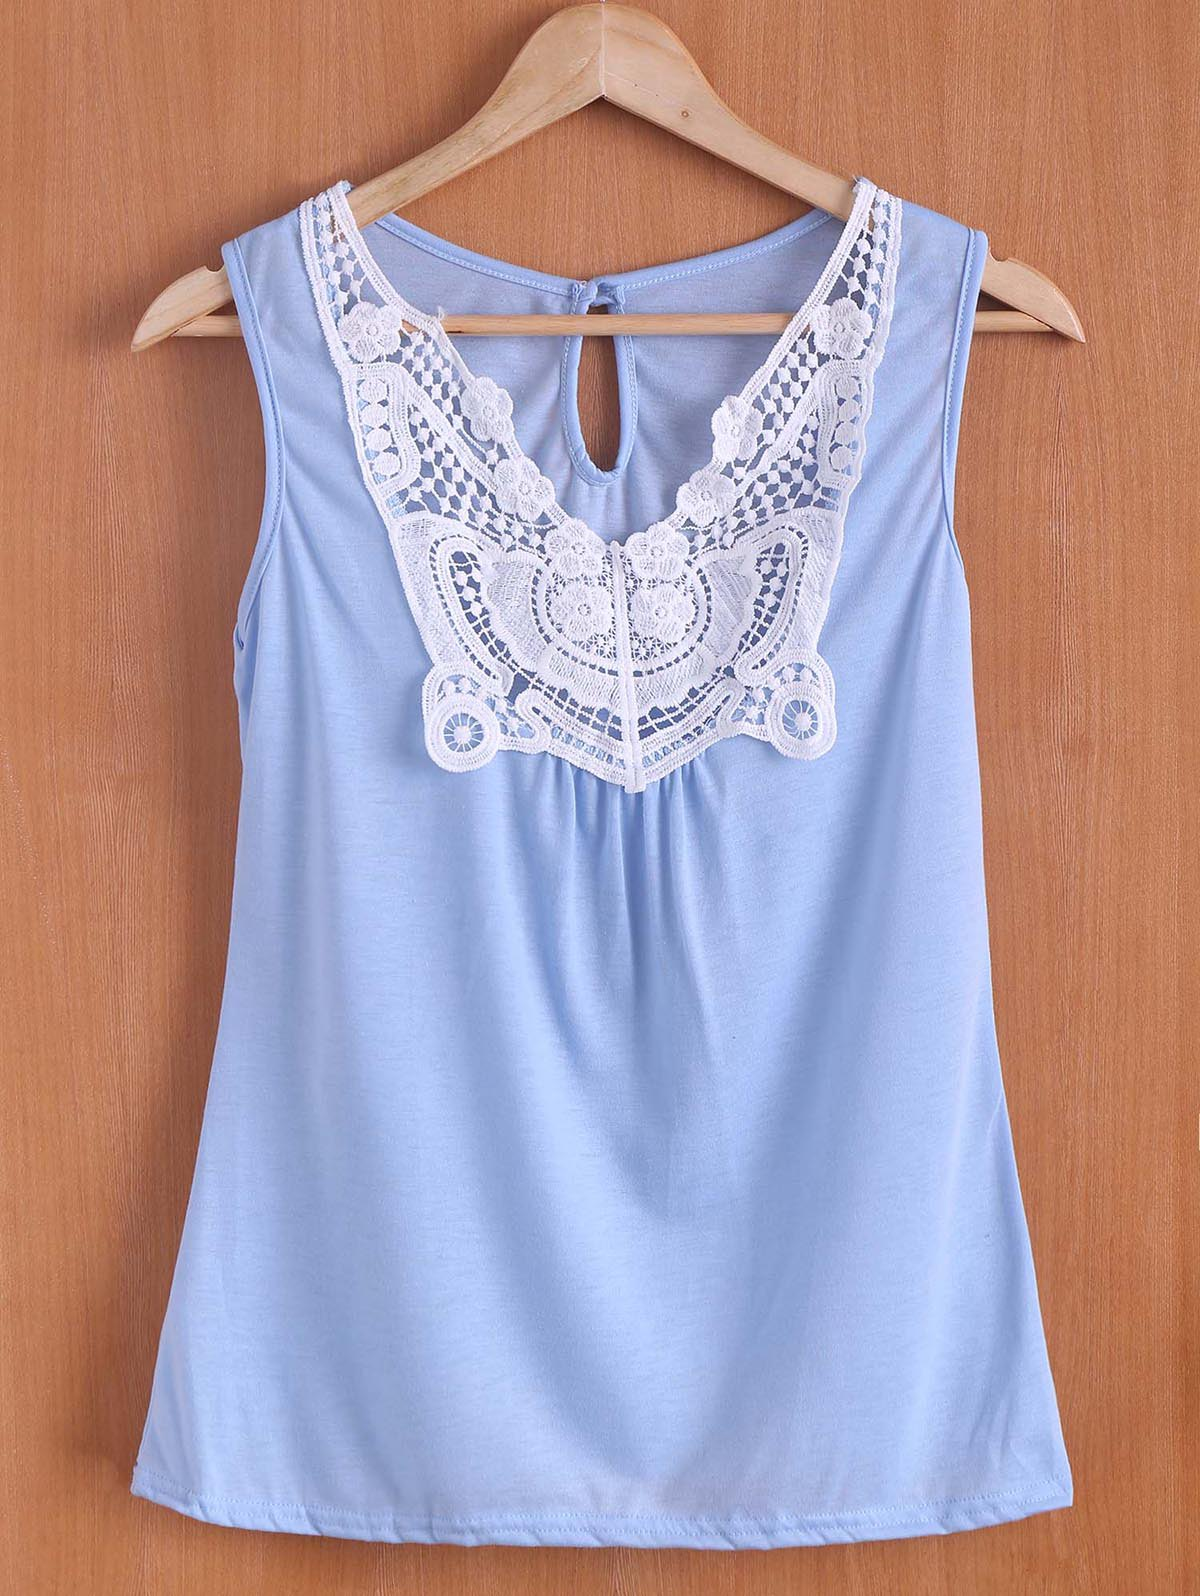 Stylish Sleeveless Scoop Neck Spliced Women's Tank Top - LIGHT BLUE S